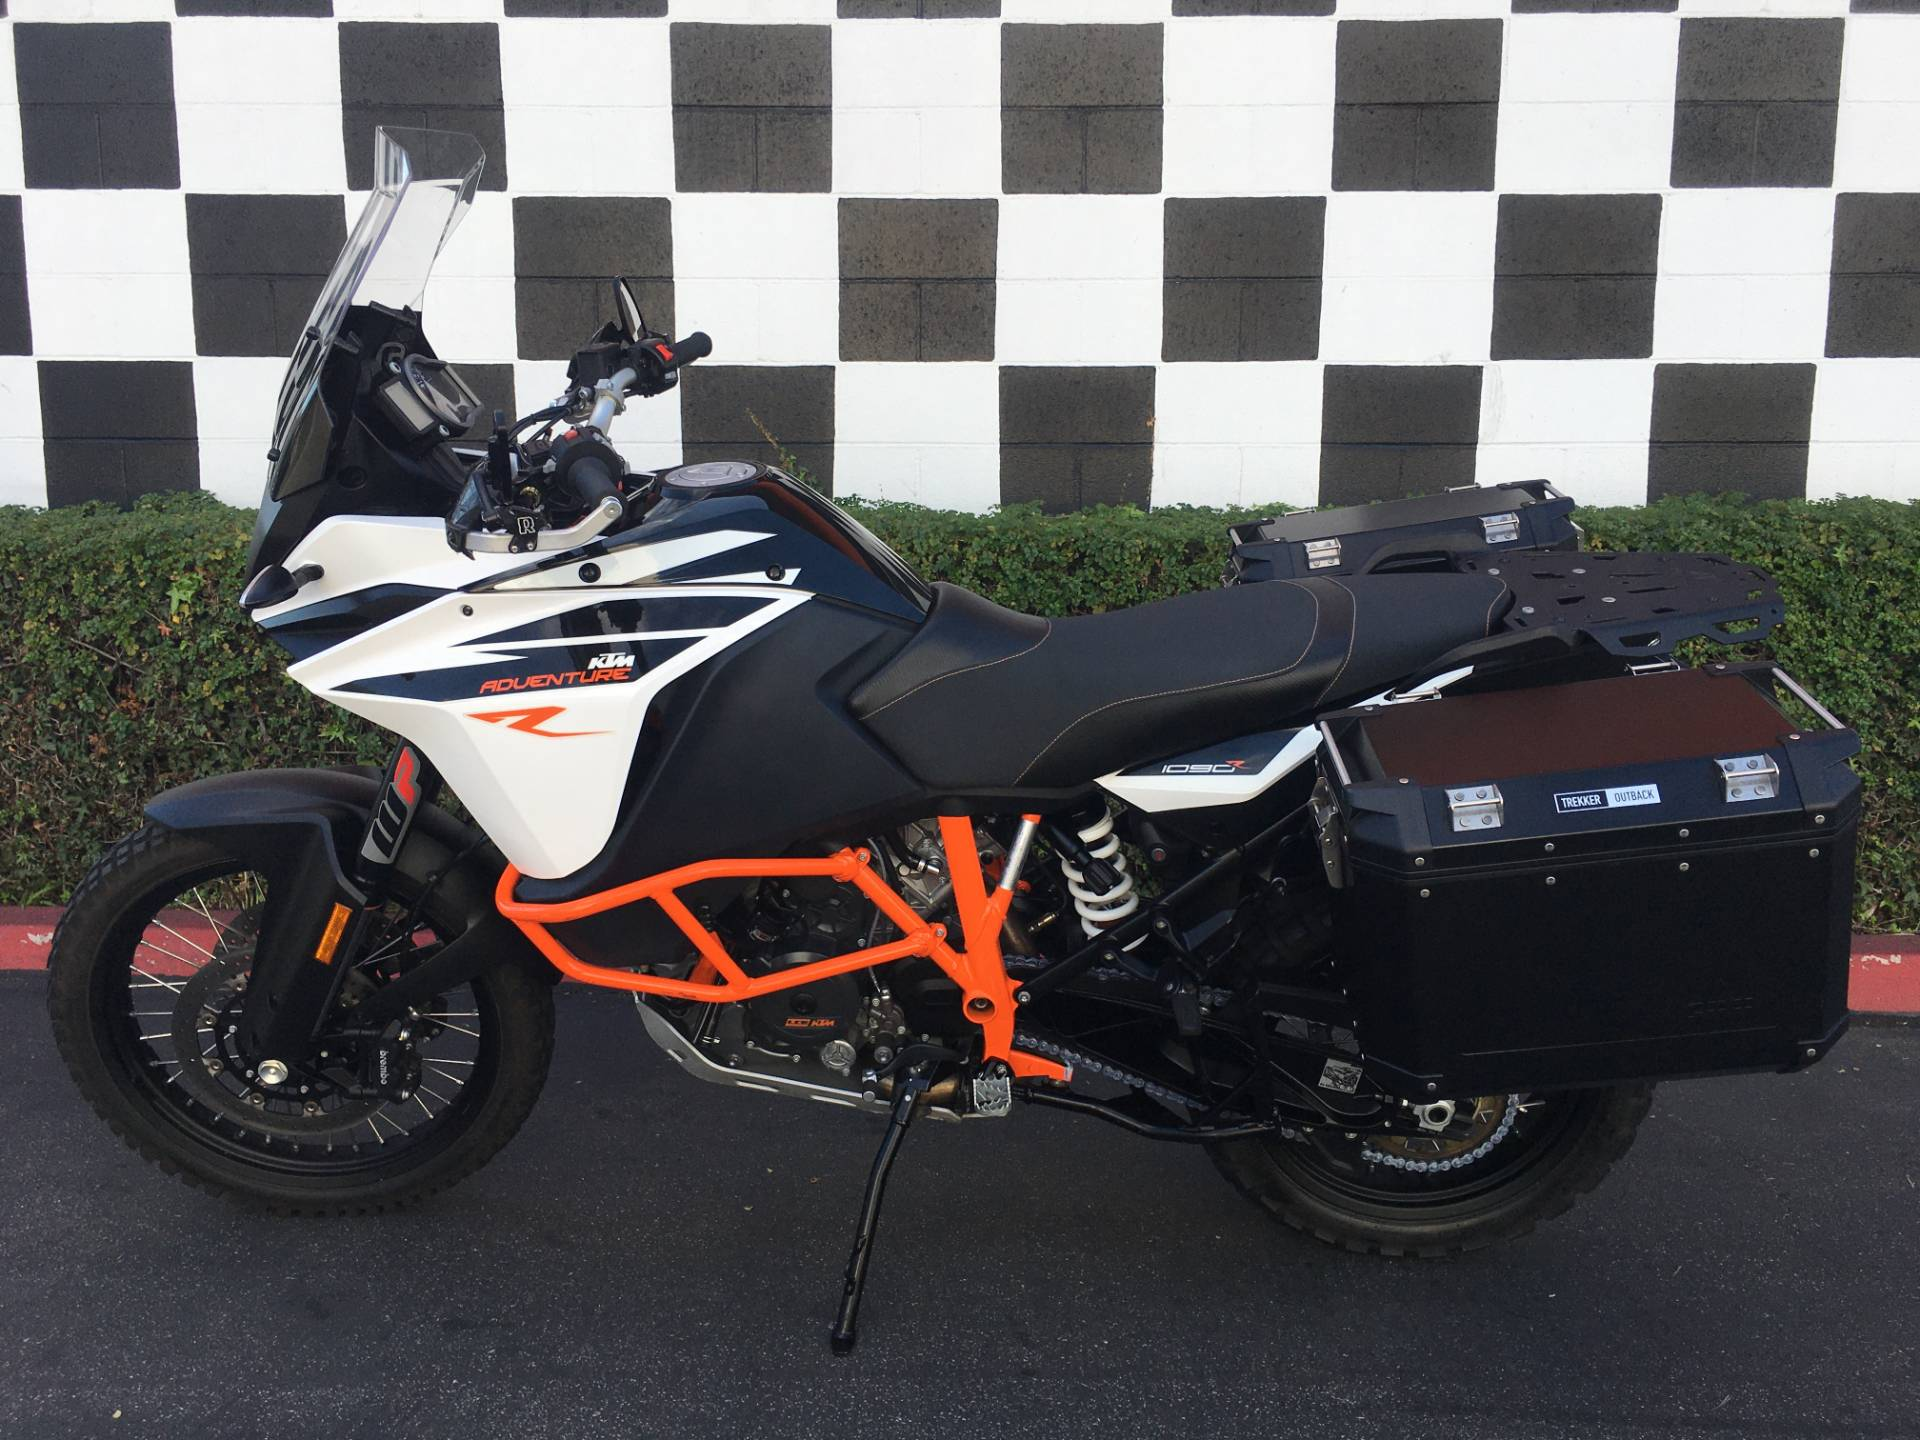 2017 KTM 1090 Adventure R in Costa Mesa, California - Photo 2